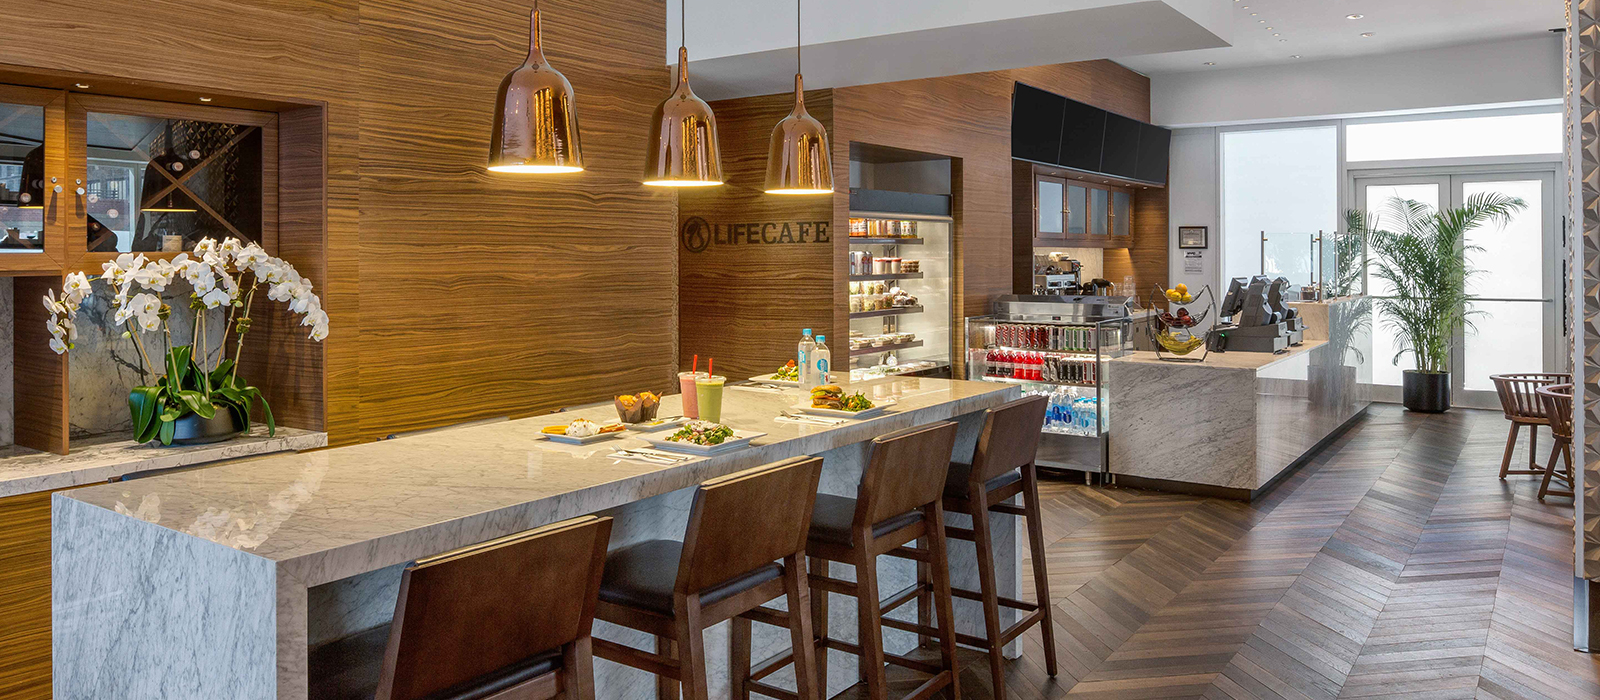 Pictured is the LifeCafe at Sky.